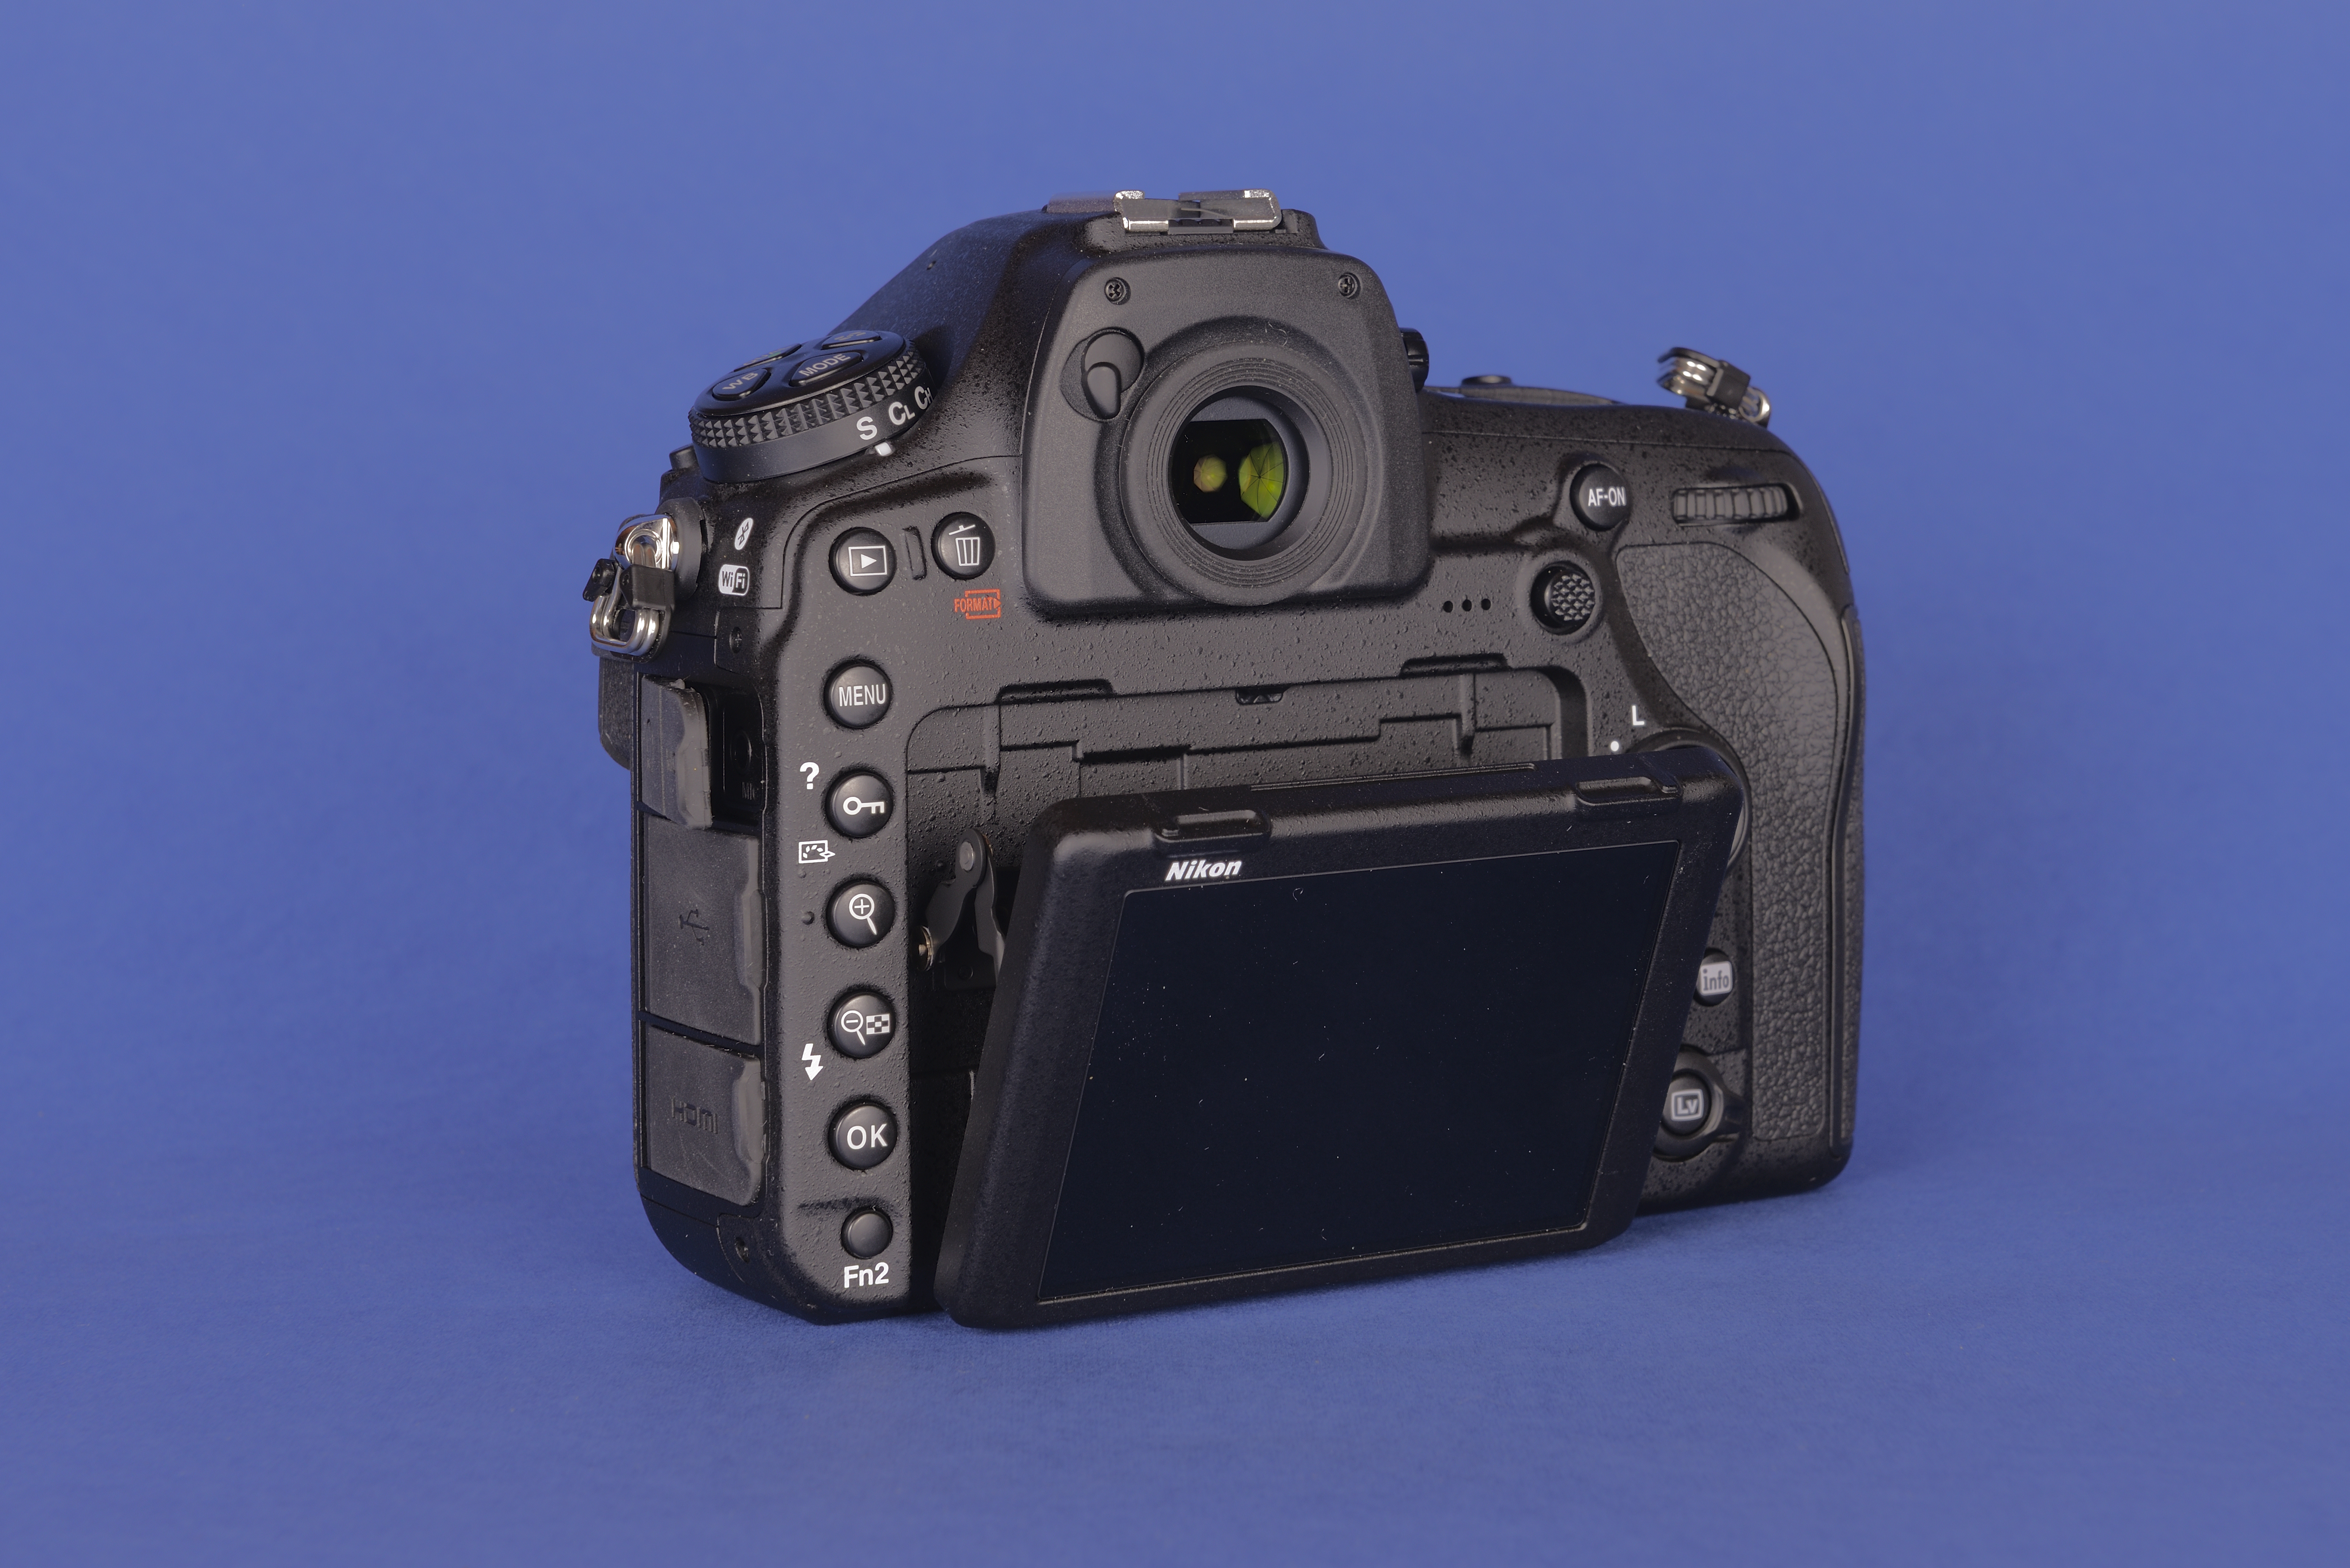 Nikon D850 Wikipedia Camera Parts Diagram F3 P Rear Of The With Articulating Screen